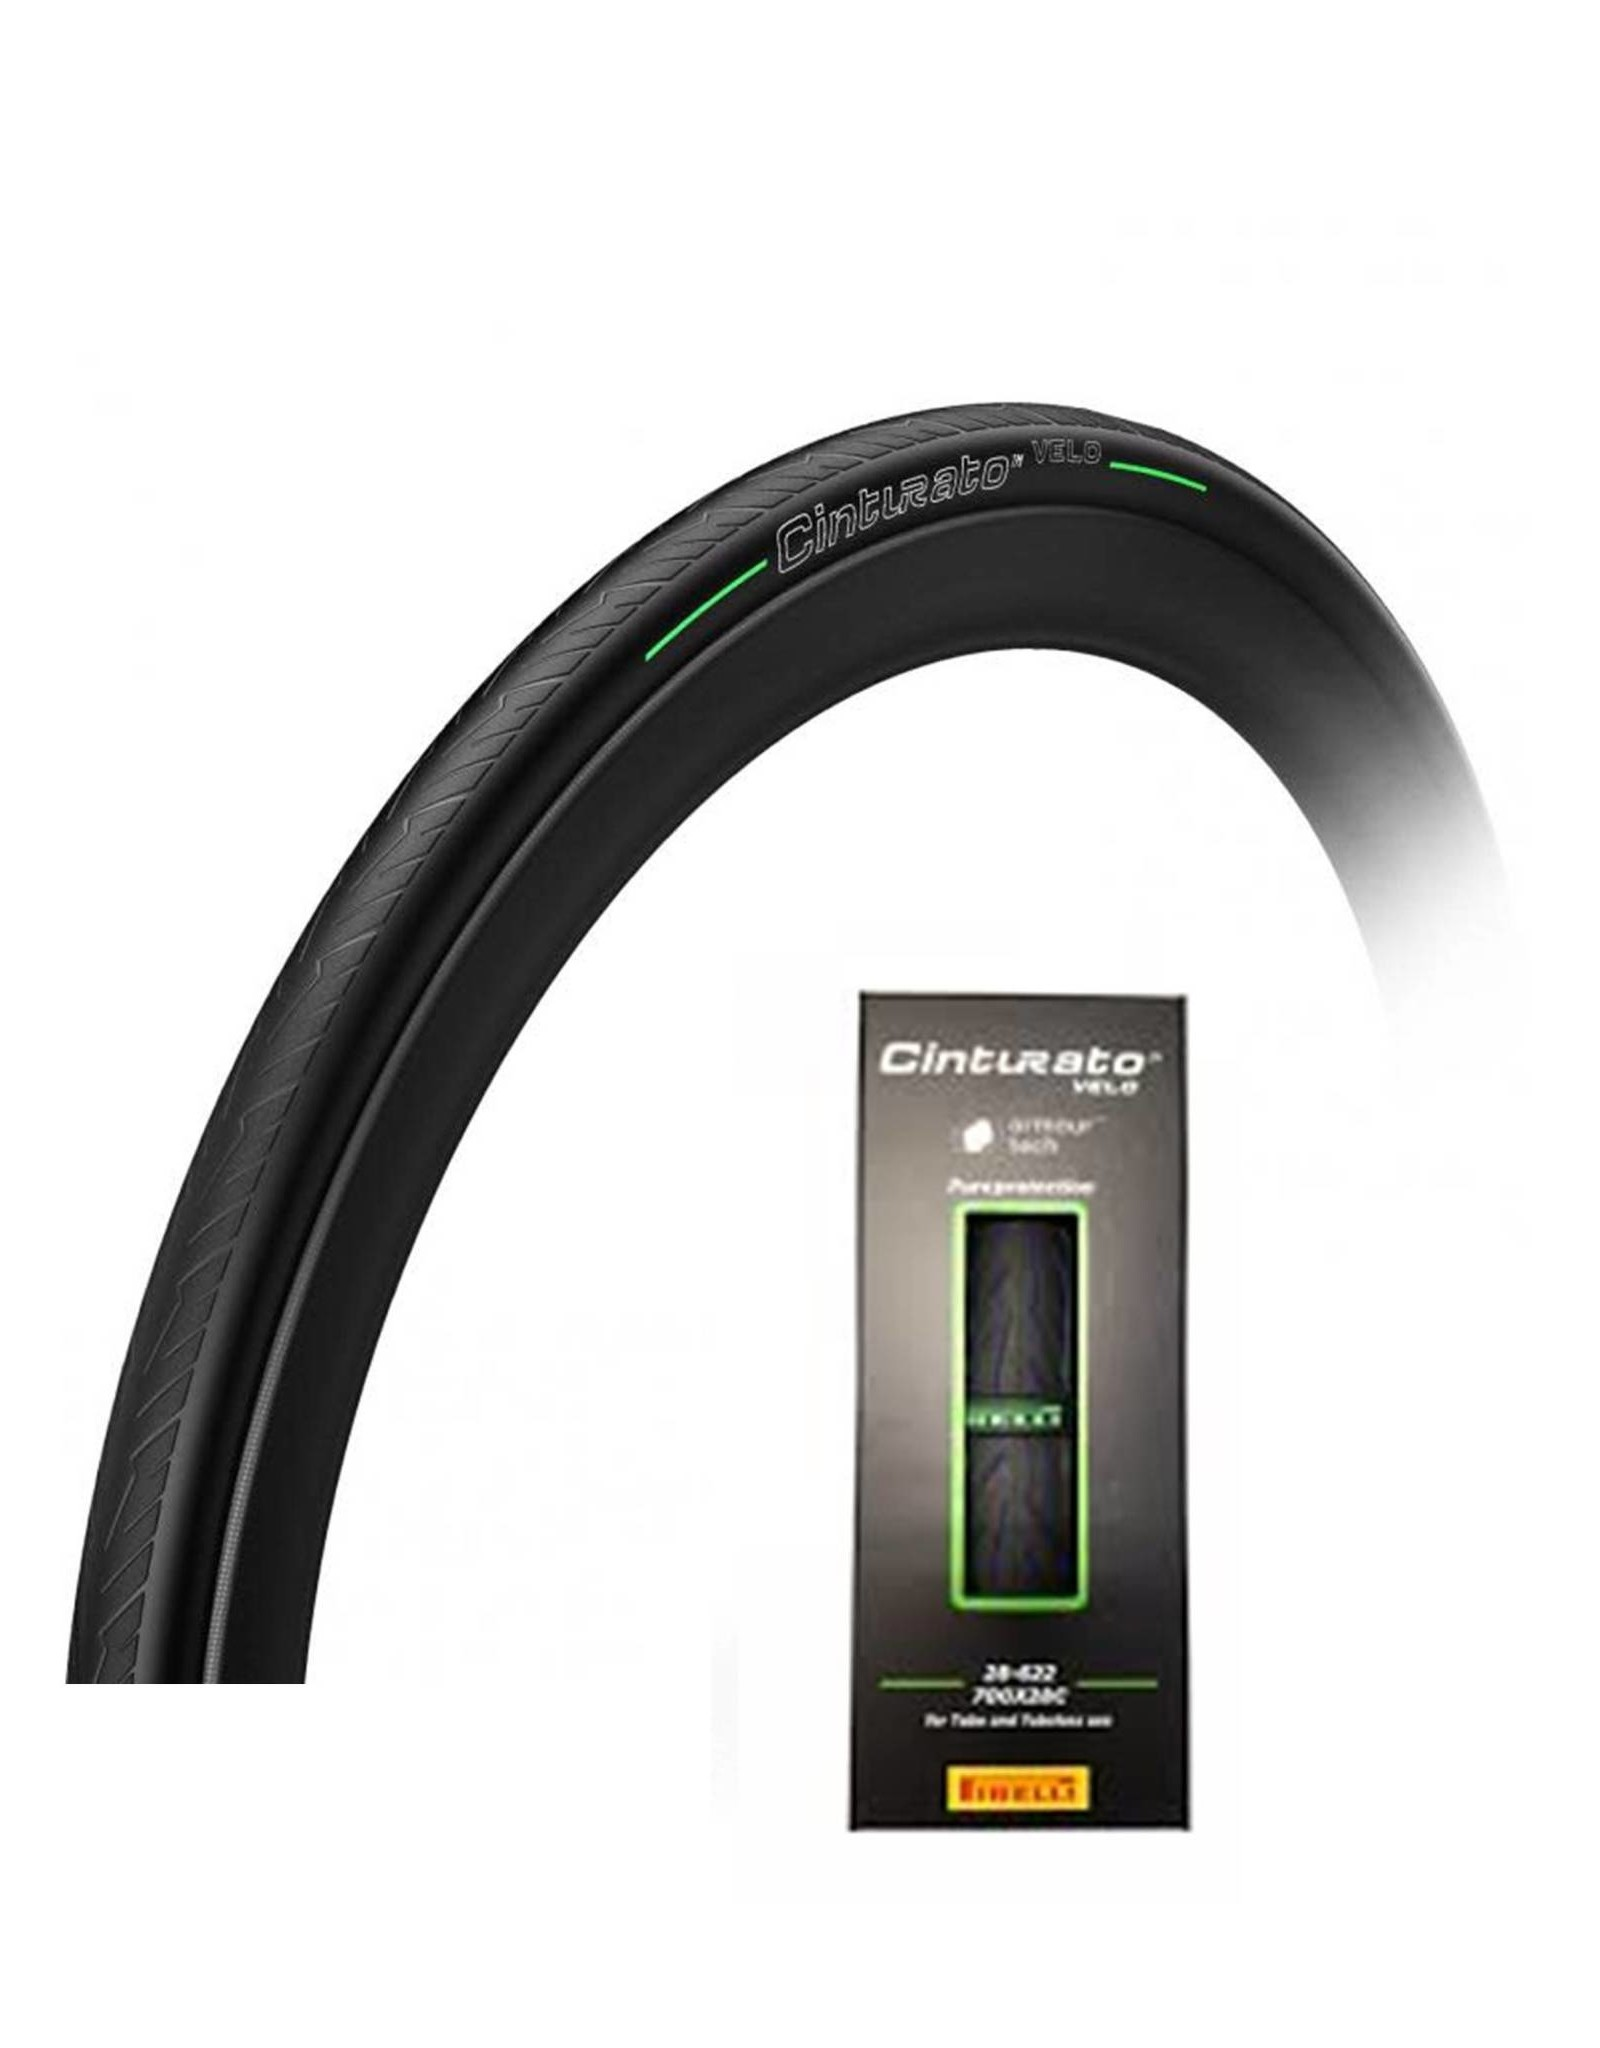 Pirelli Cinturato TLR 700 x 26 Green Tyre